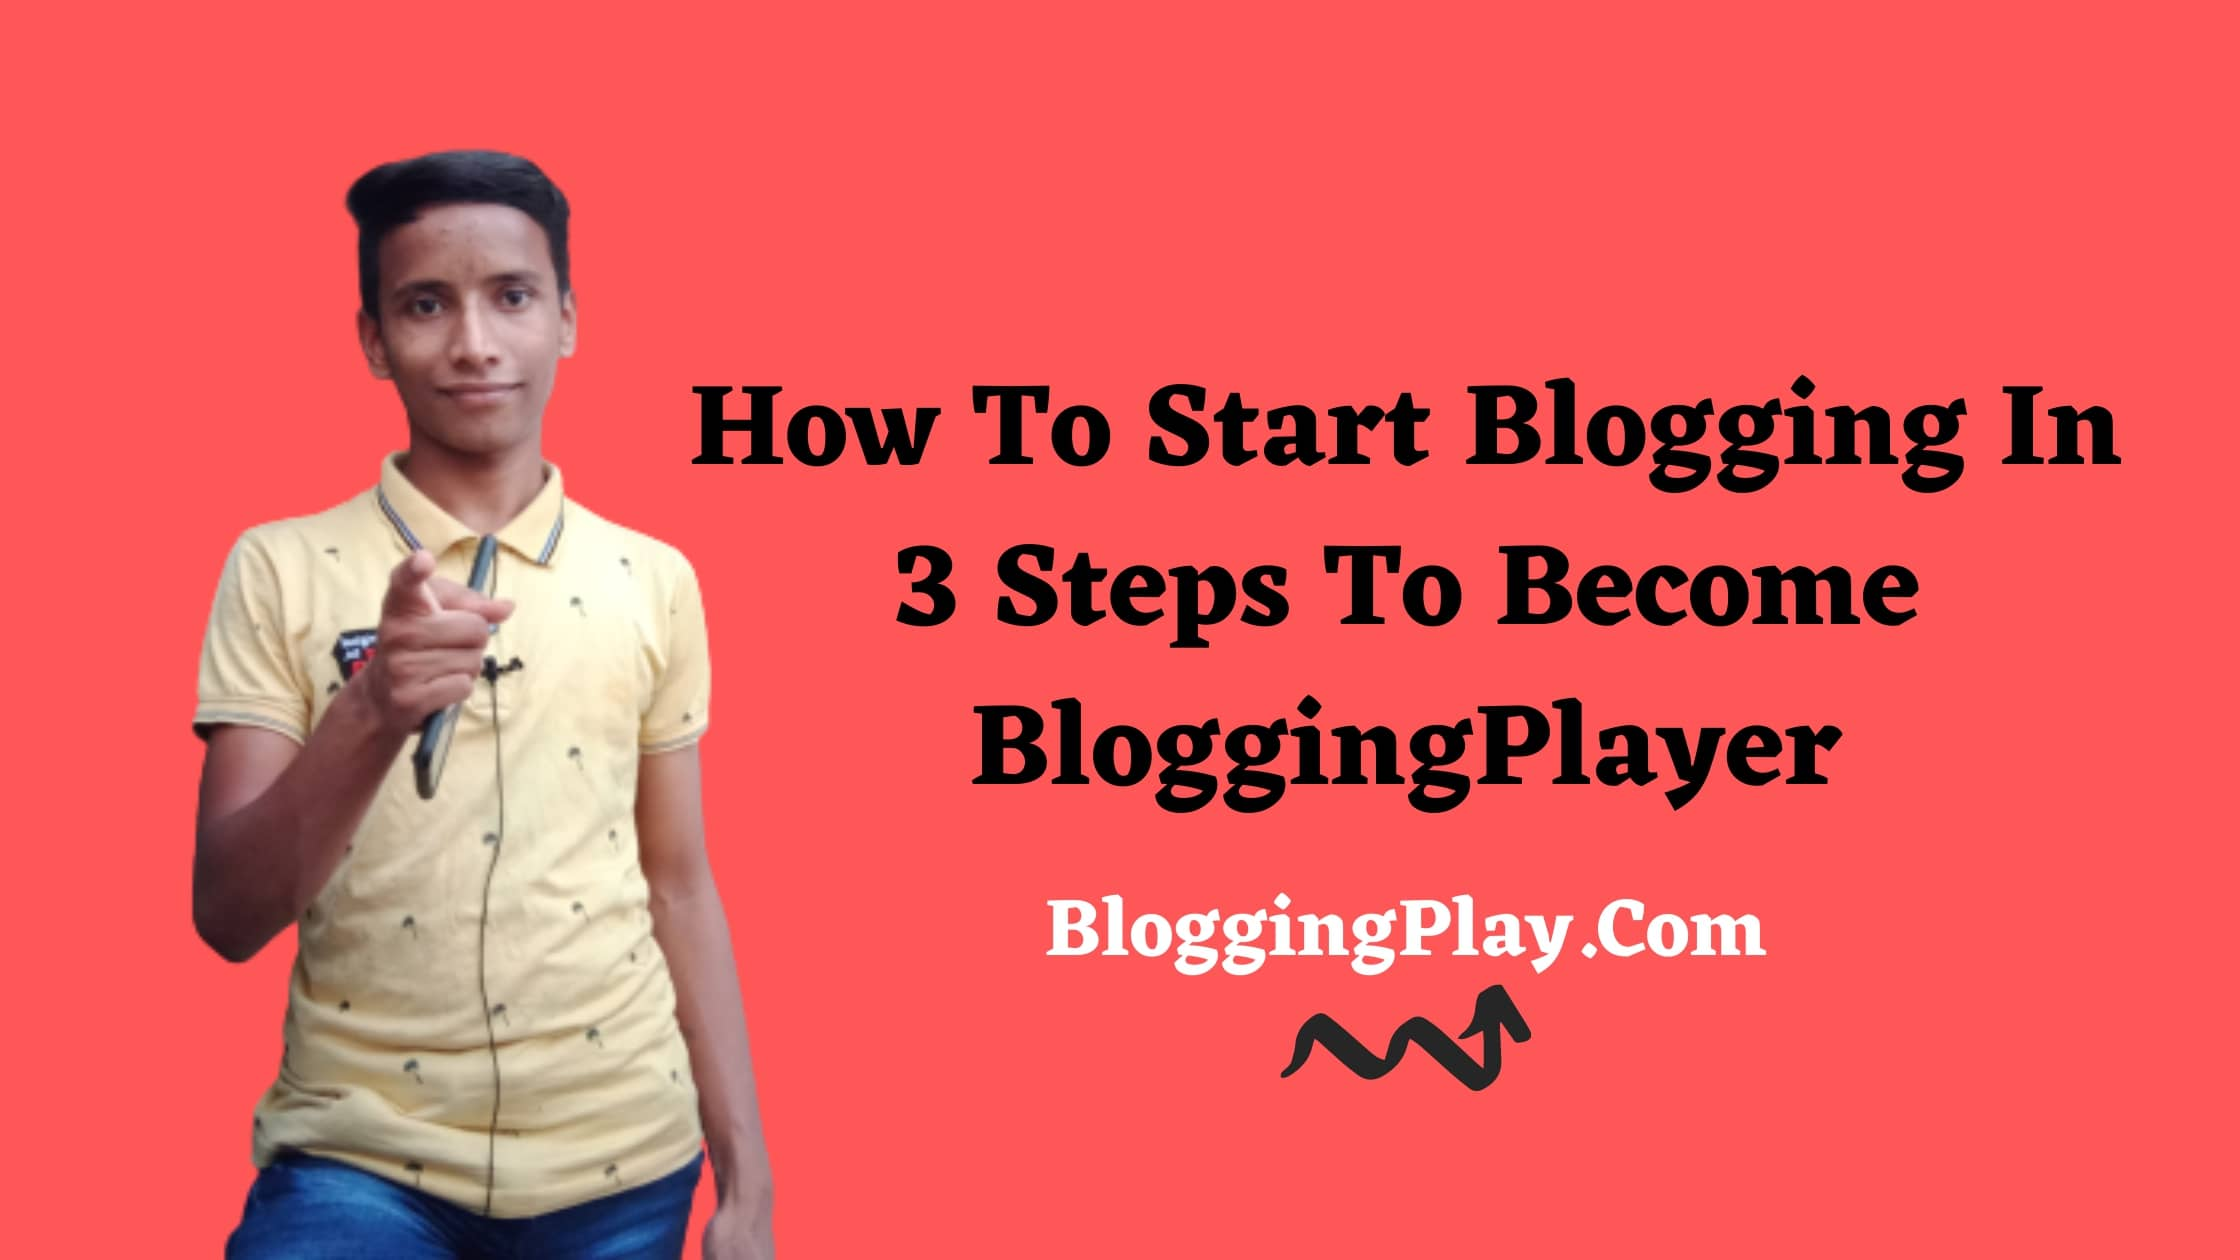 How to start blogging in 3 steps